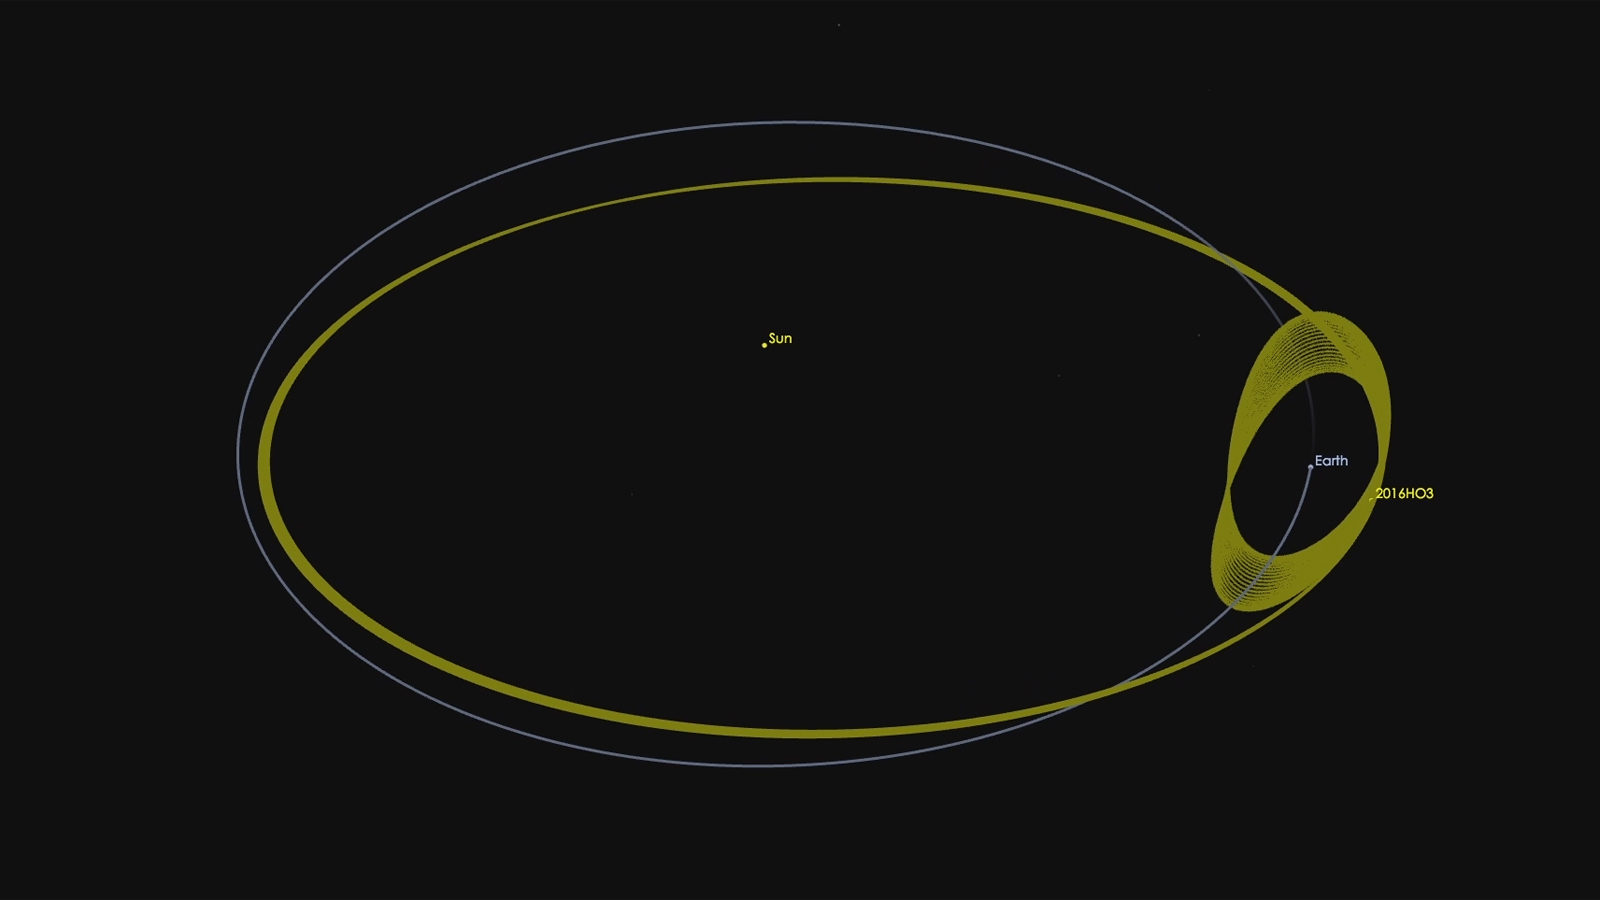 Asteroid 2016 HO3 has an orbit around the sun that keeps it as a constant companion of Earth. Credit: NASA/JPL-Caltech